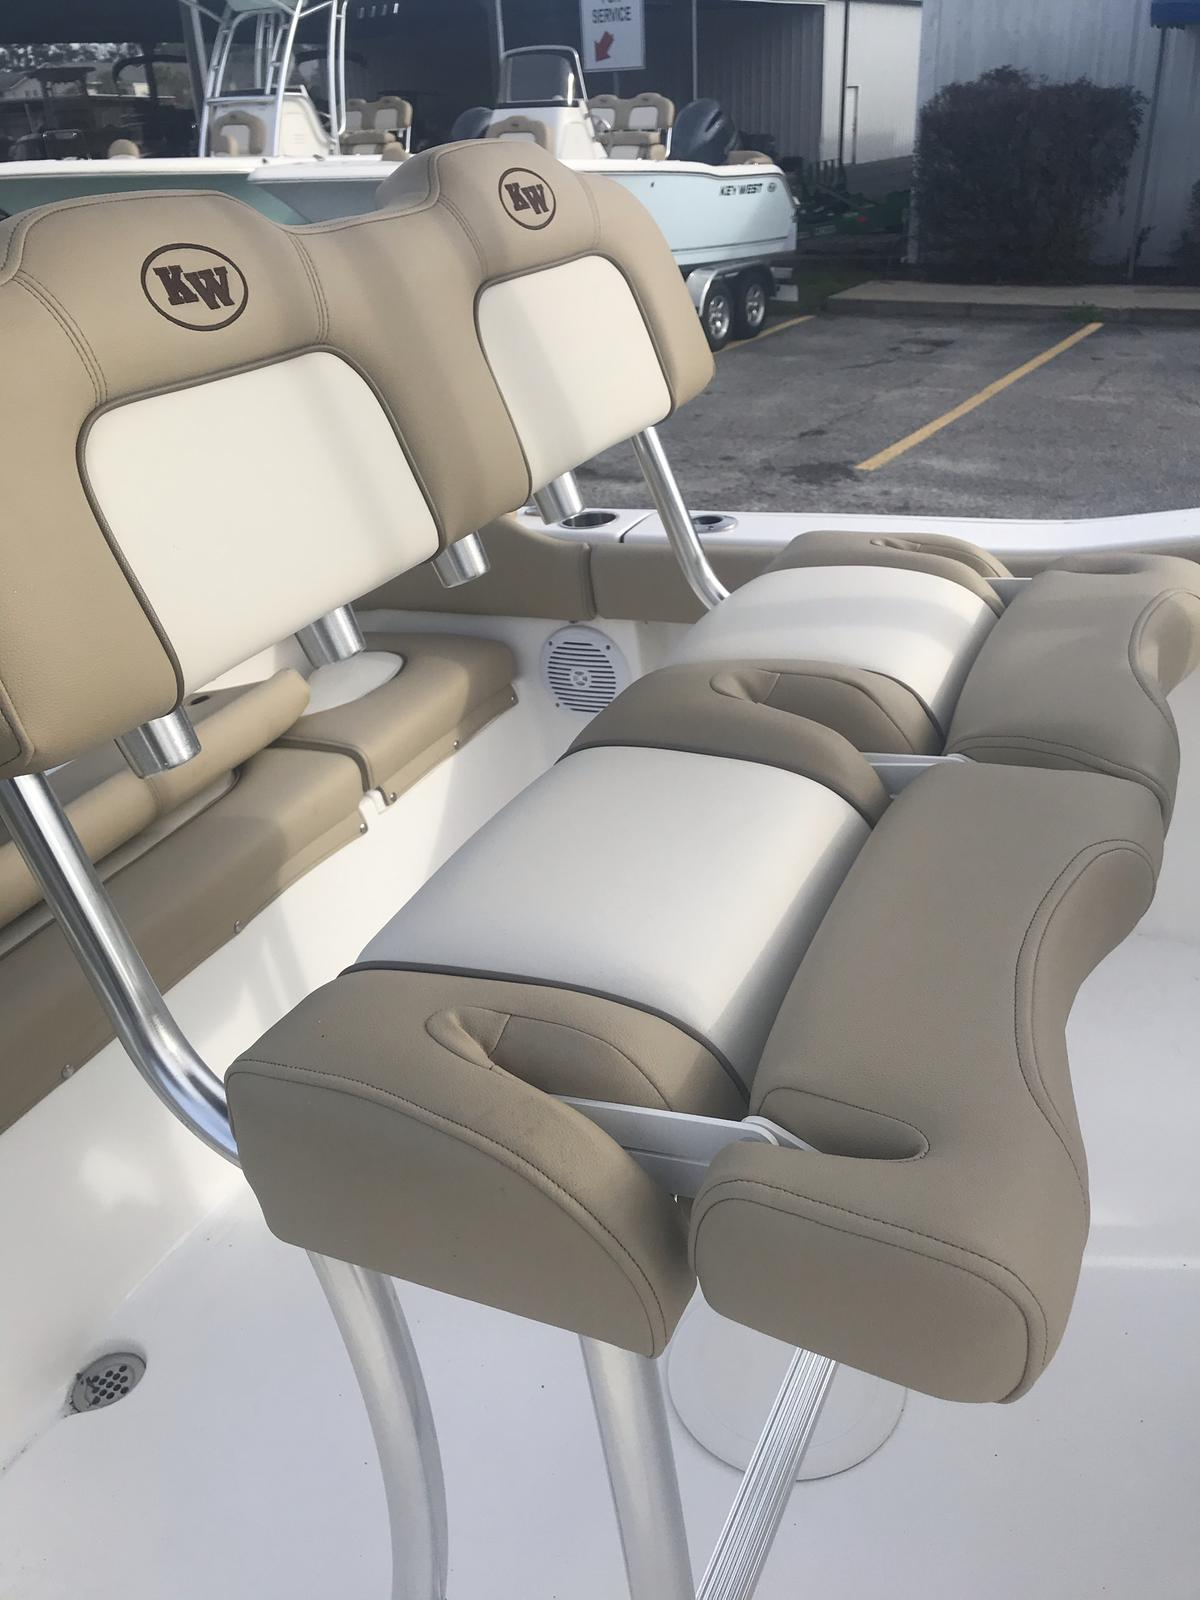 2020 Key West boat for sale, model of the boat is 203FS & Image # 3 of 14